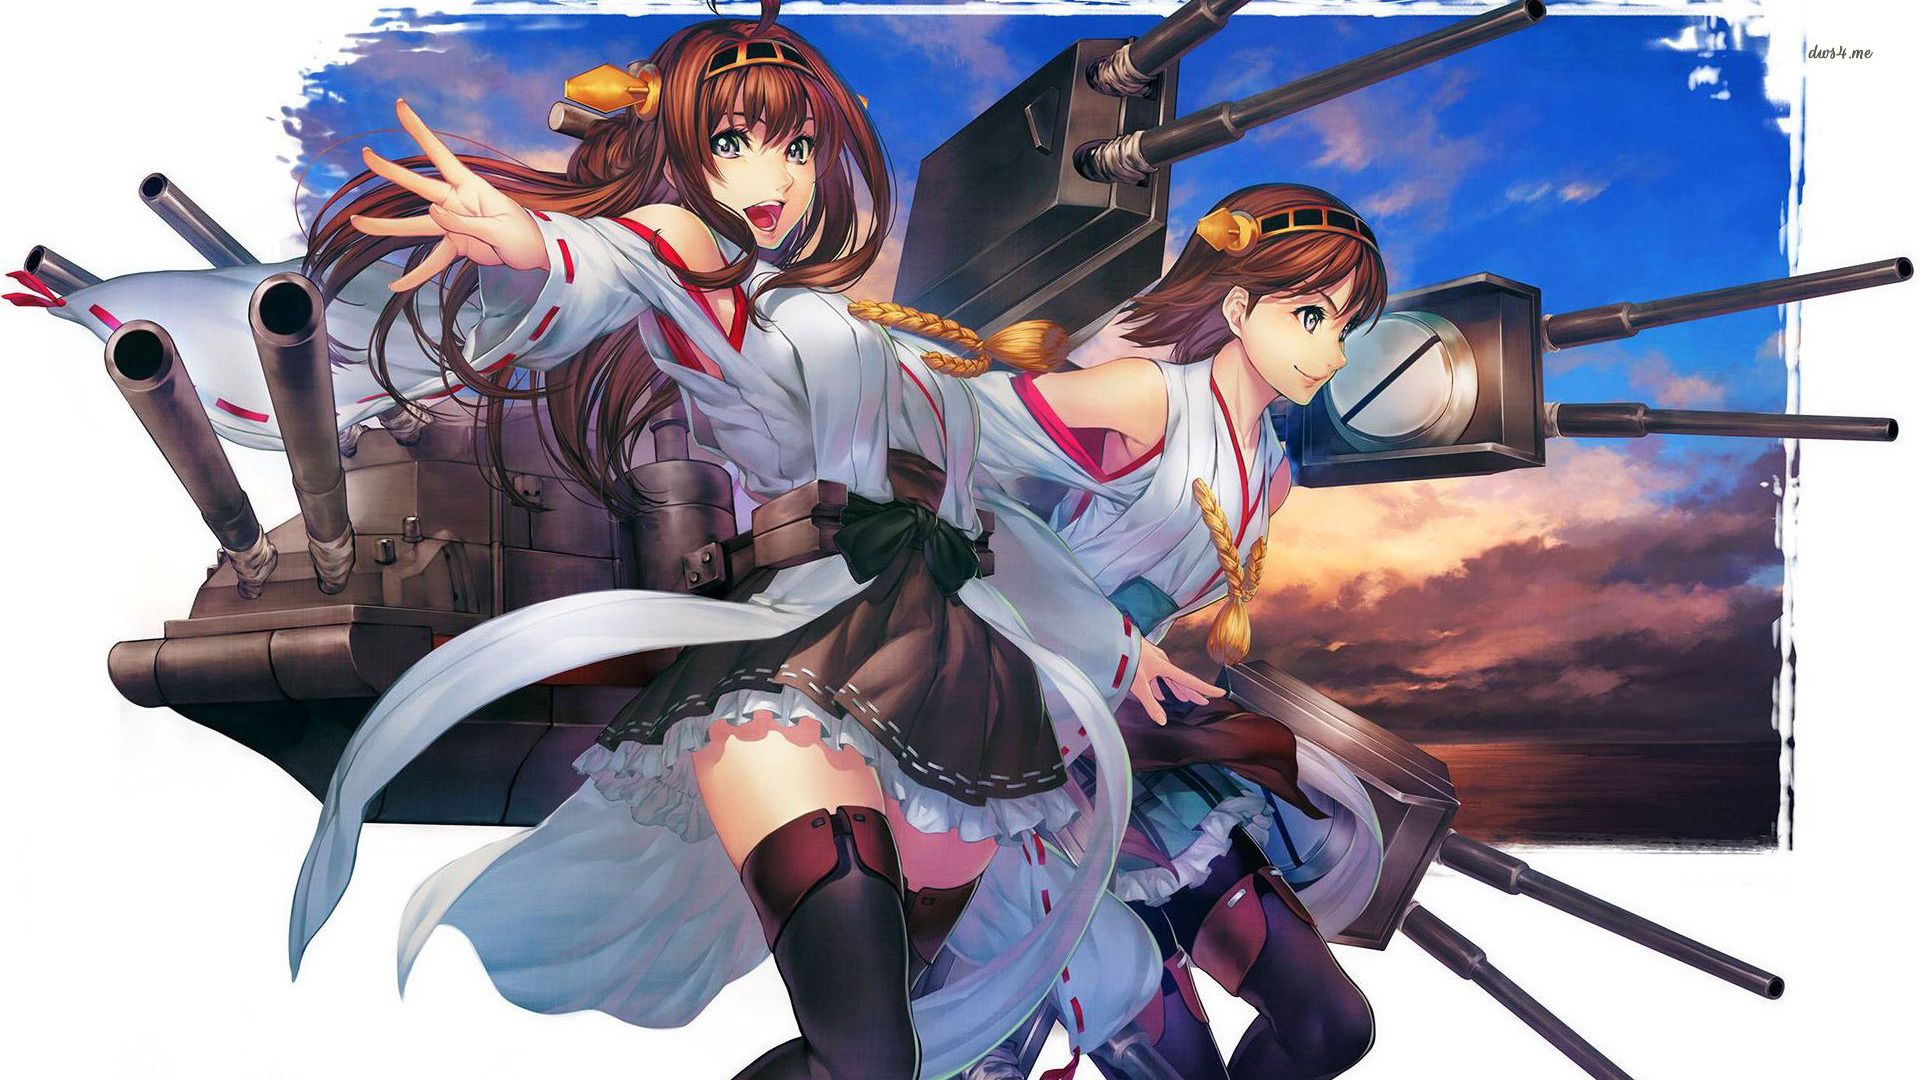 Kantai Collection Wallpapers Full HD IL17RRC   4USkY 1920x1080